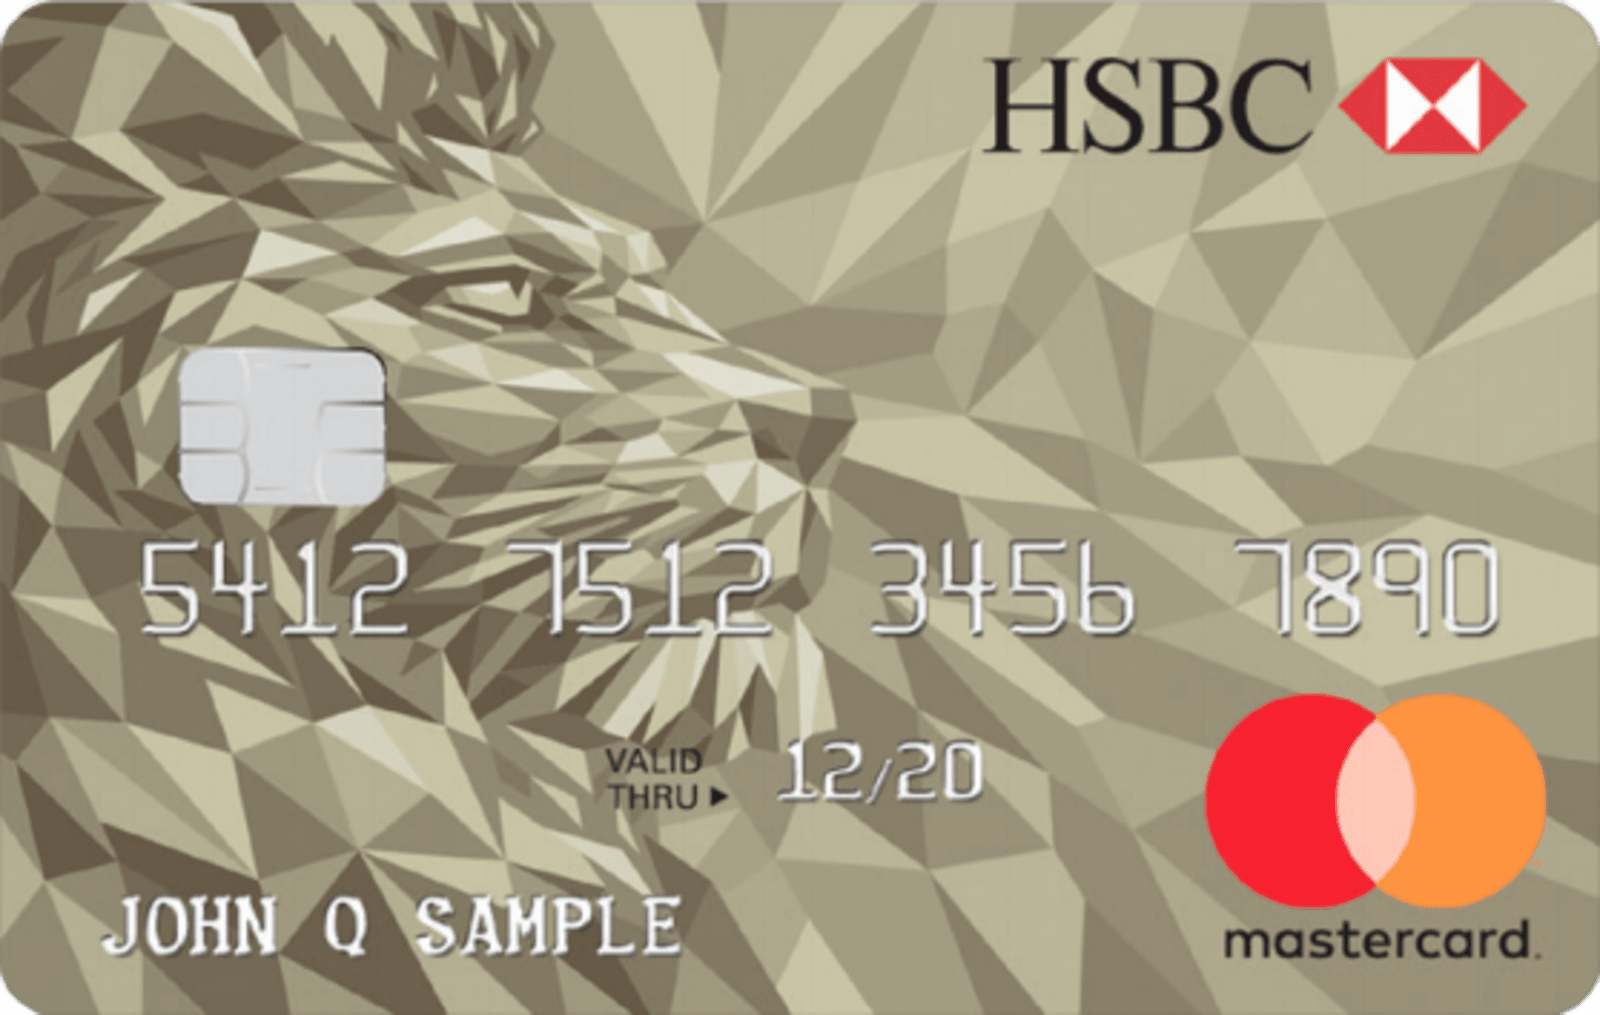 HSBC Gold Mastercard® credit card: Should You Apply? | Credit Card